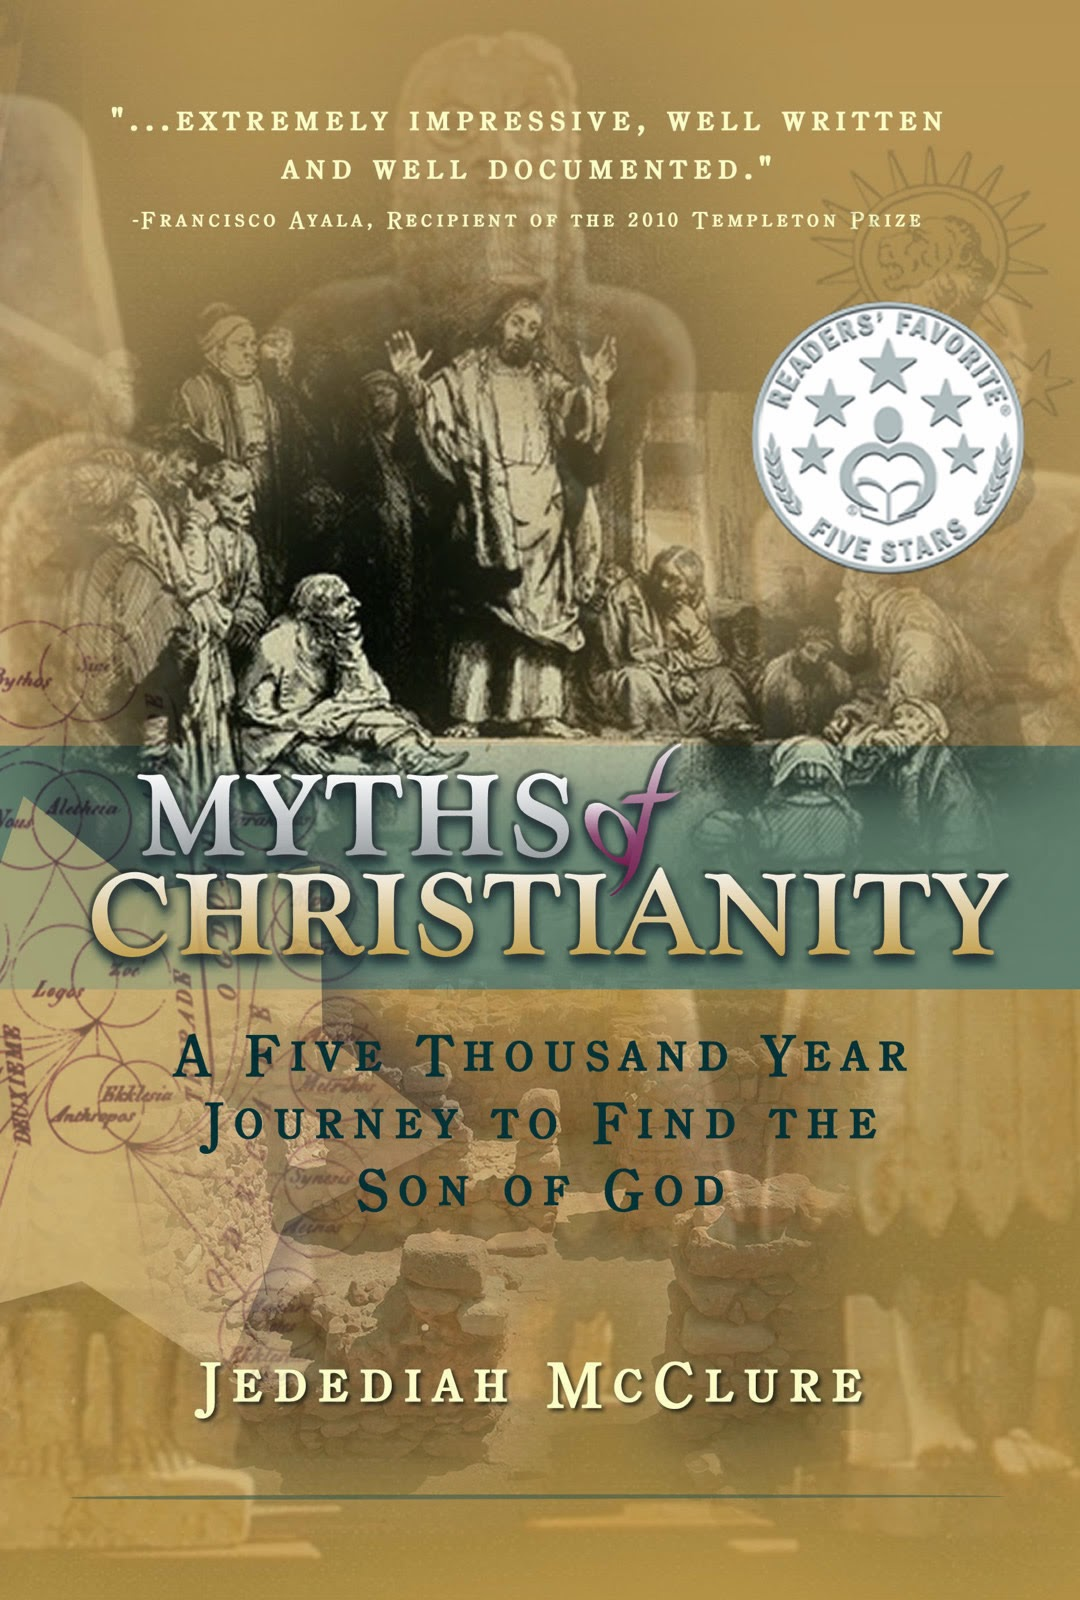 myths of christianity, jedediah mcclure